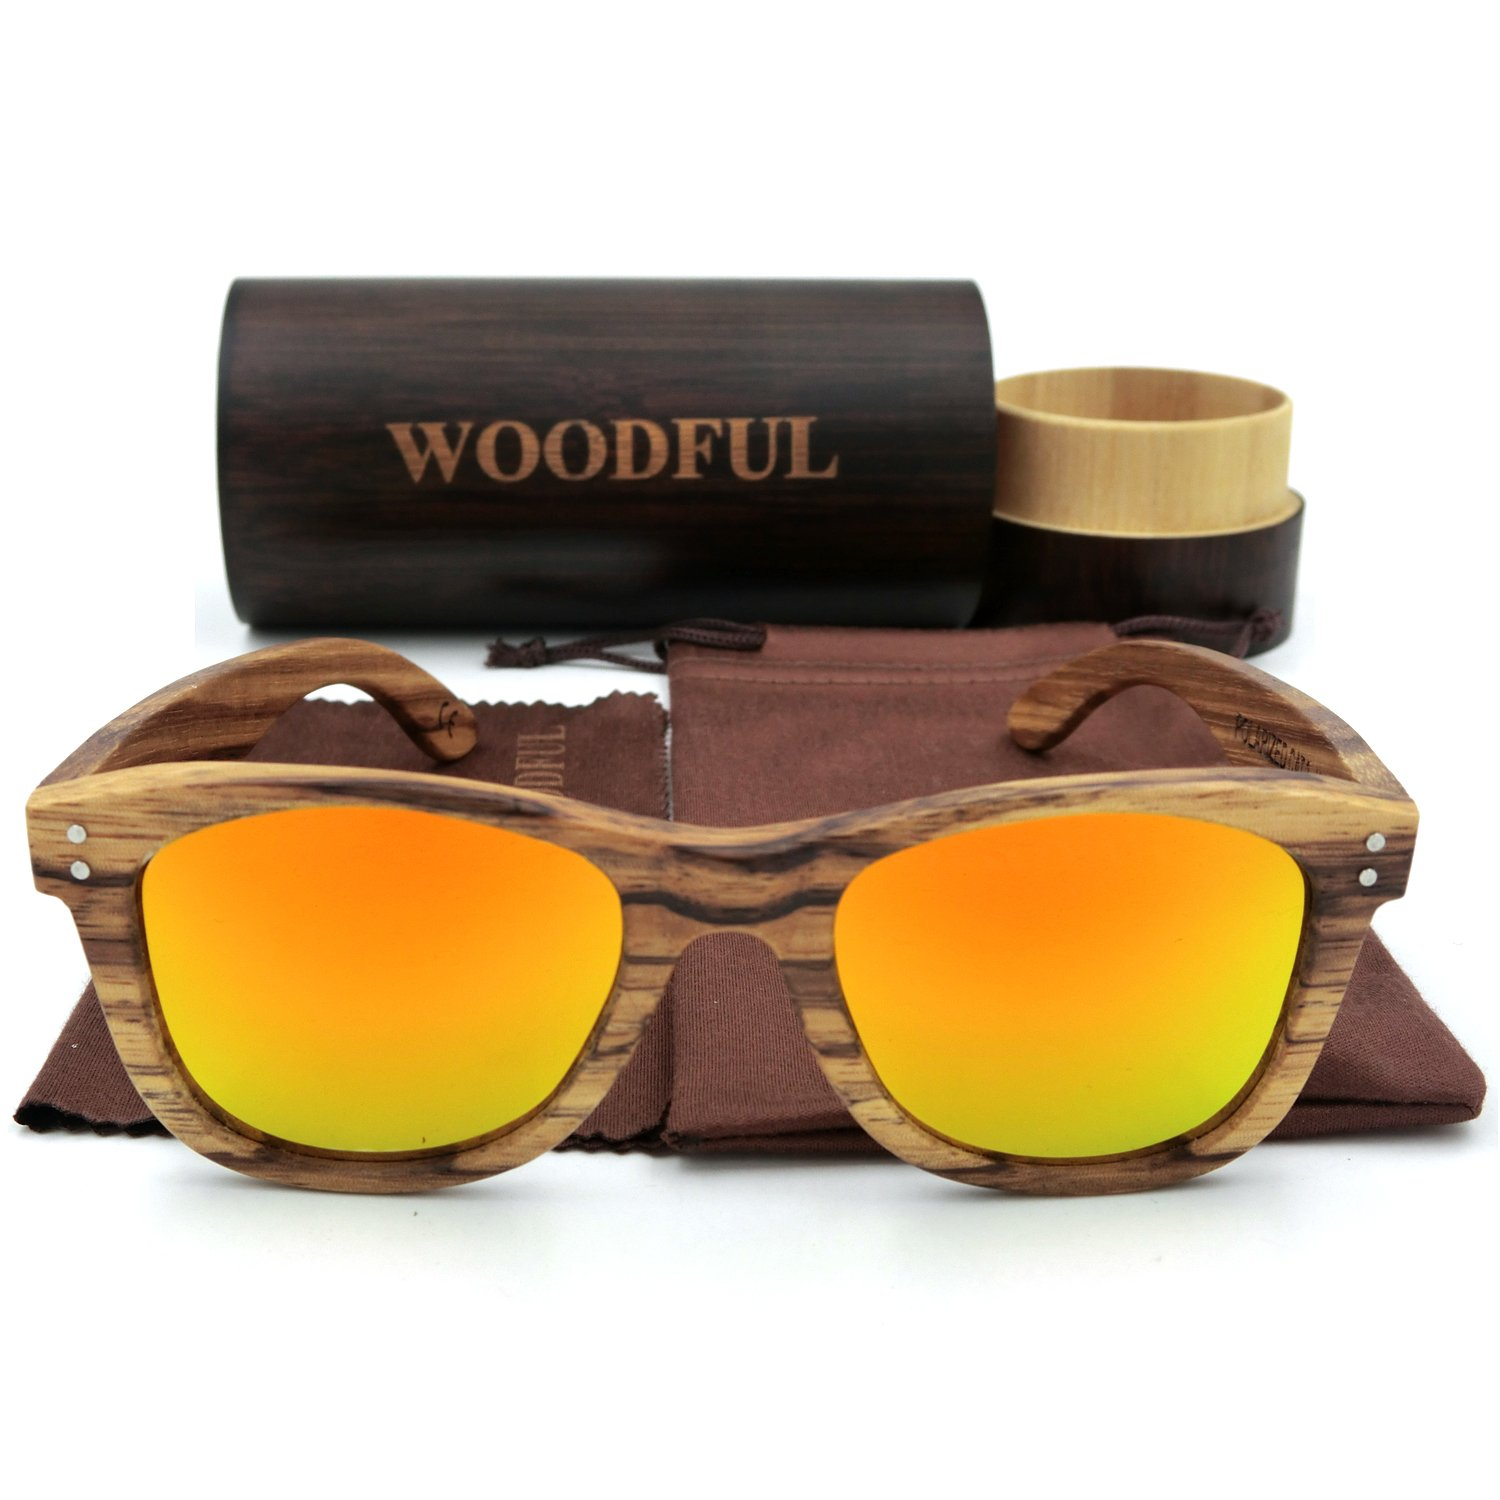 Wooden Sunglasses with Round Bamboo Glasses Case polarized) woodful